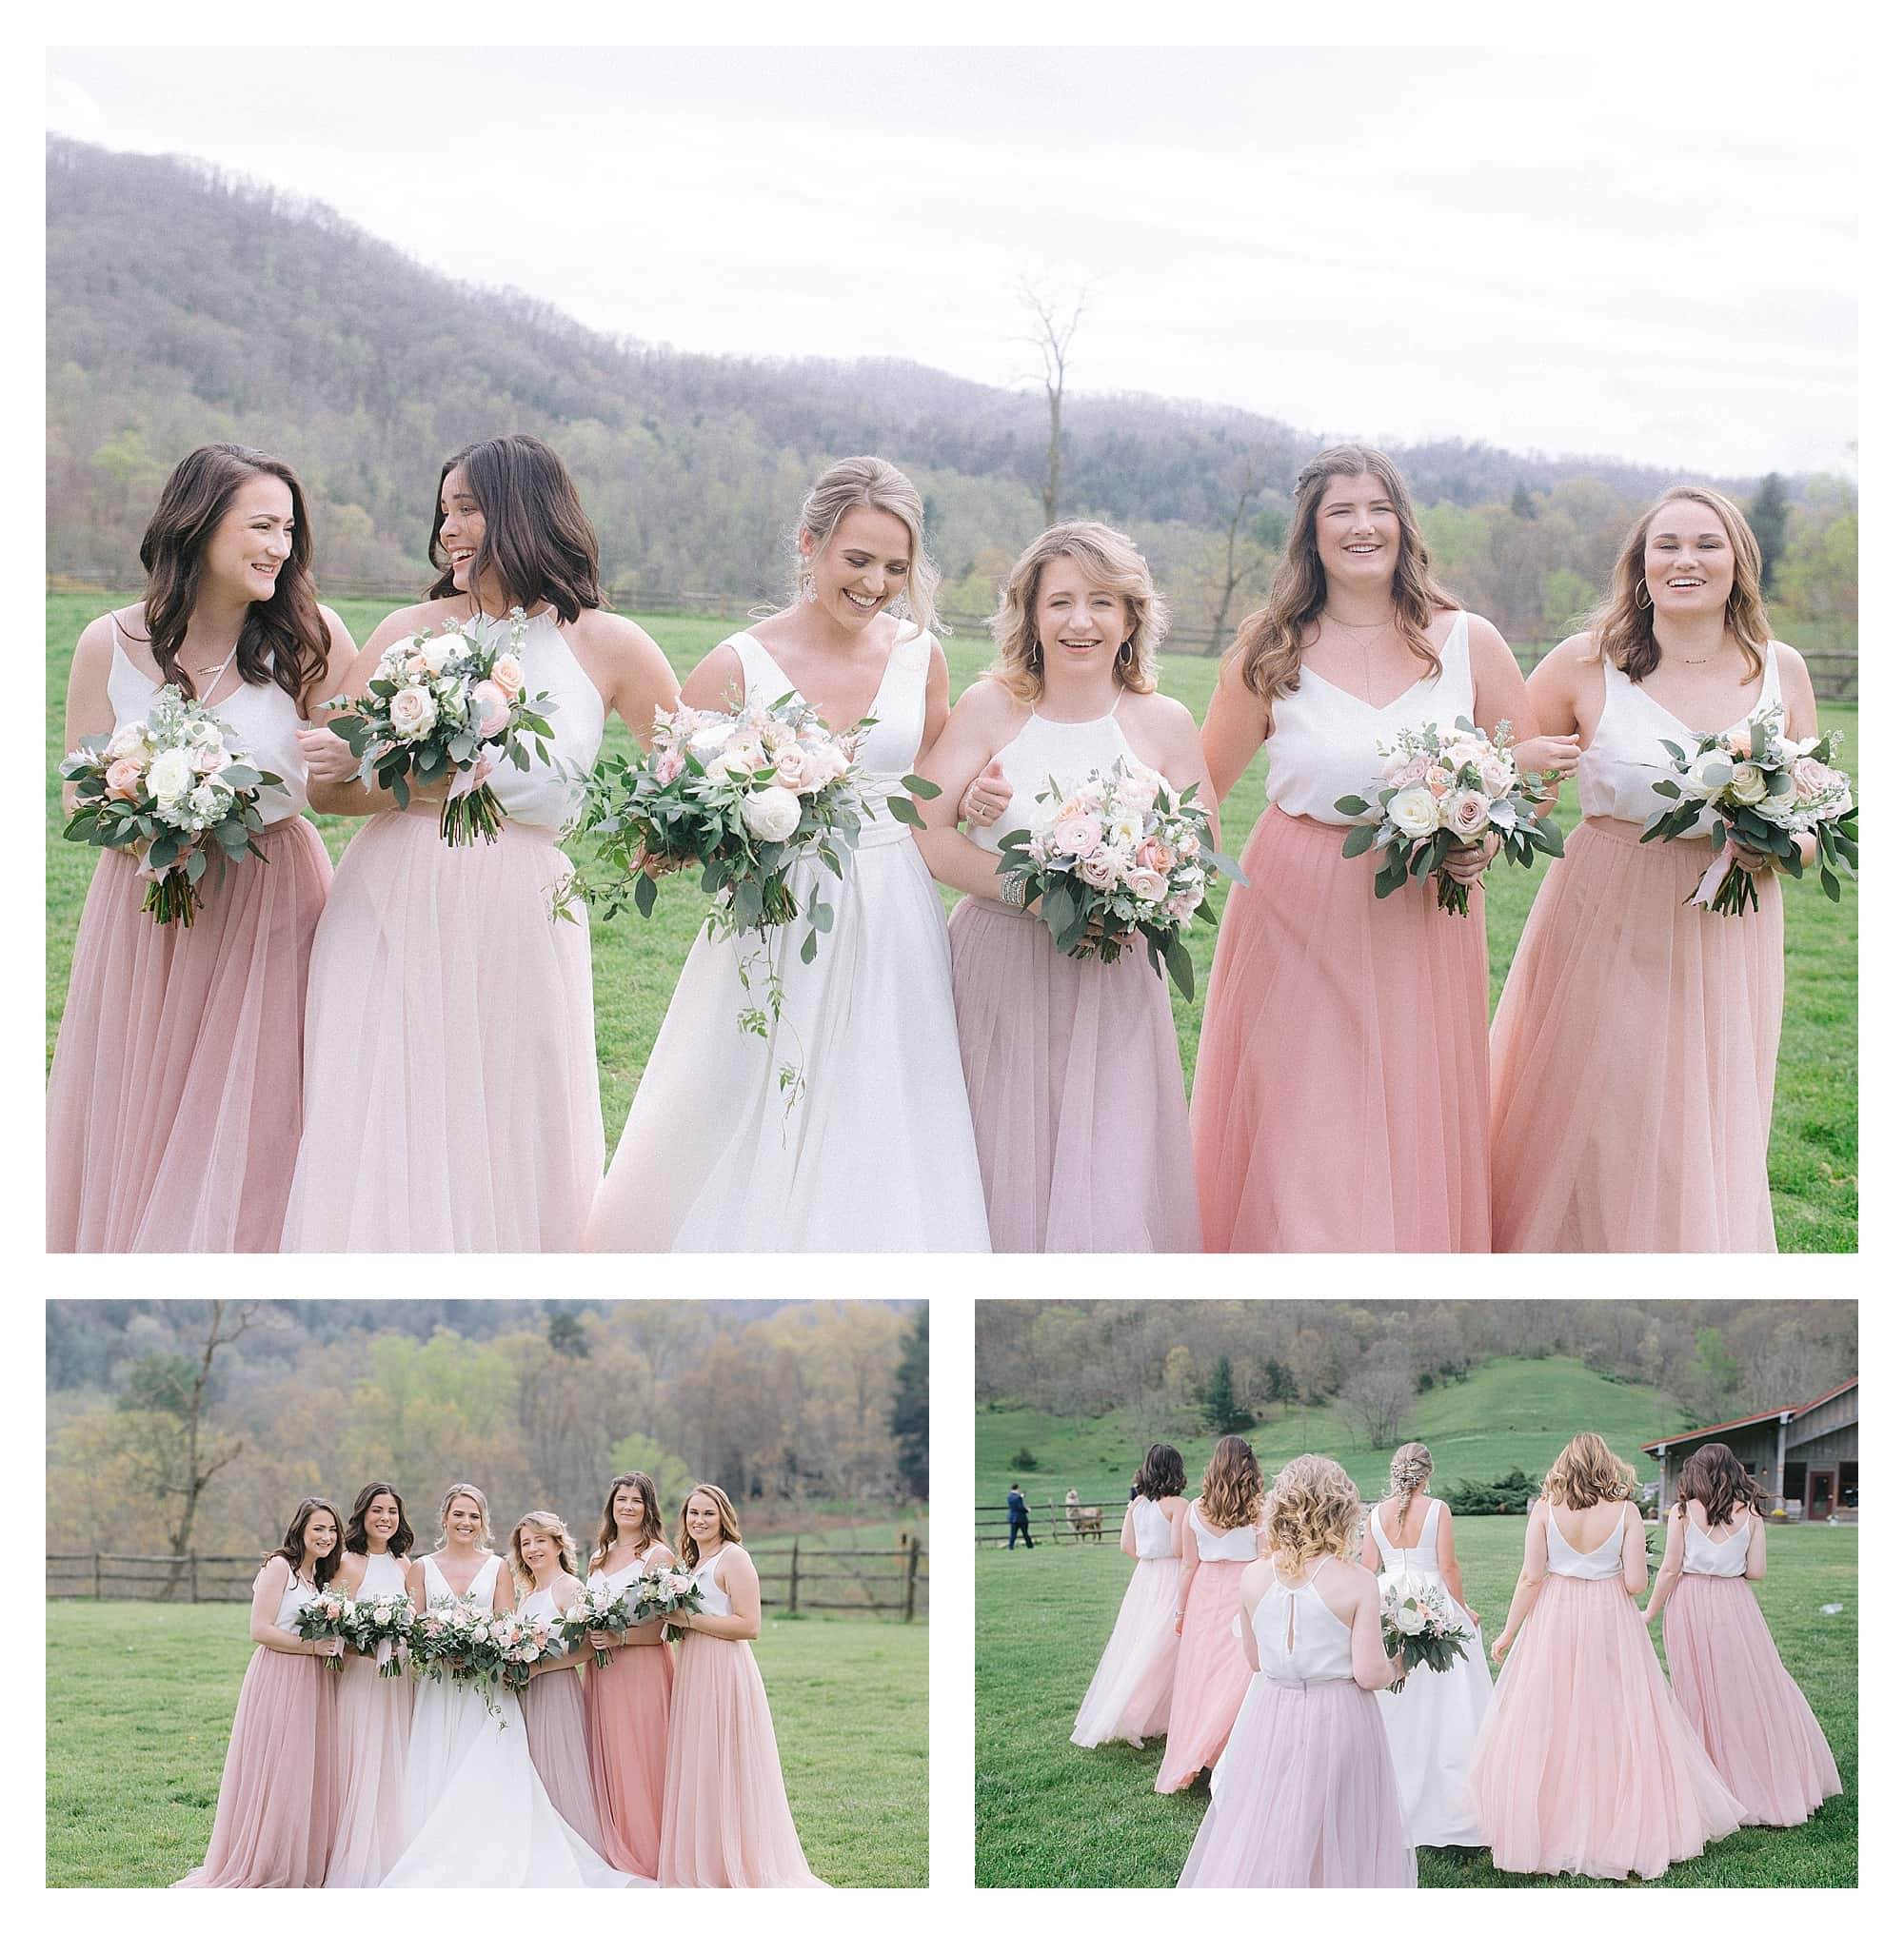 Bride and bridesmaids holding cream and peach floral bouquets